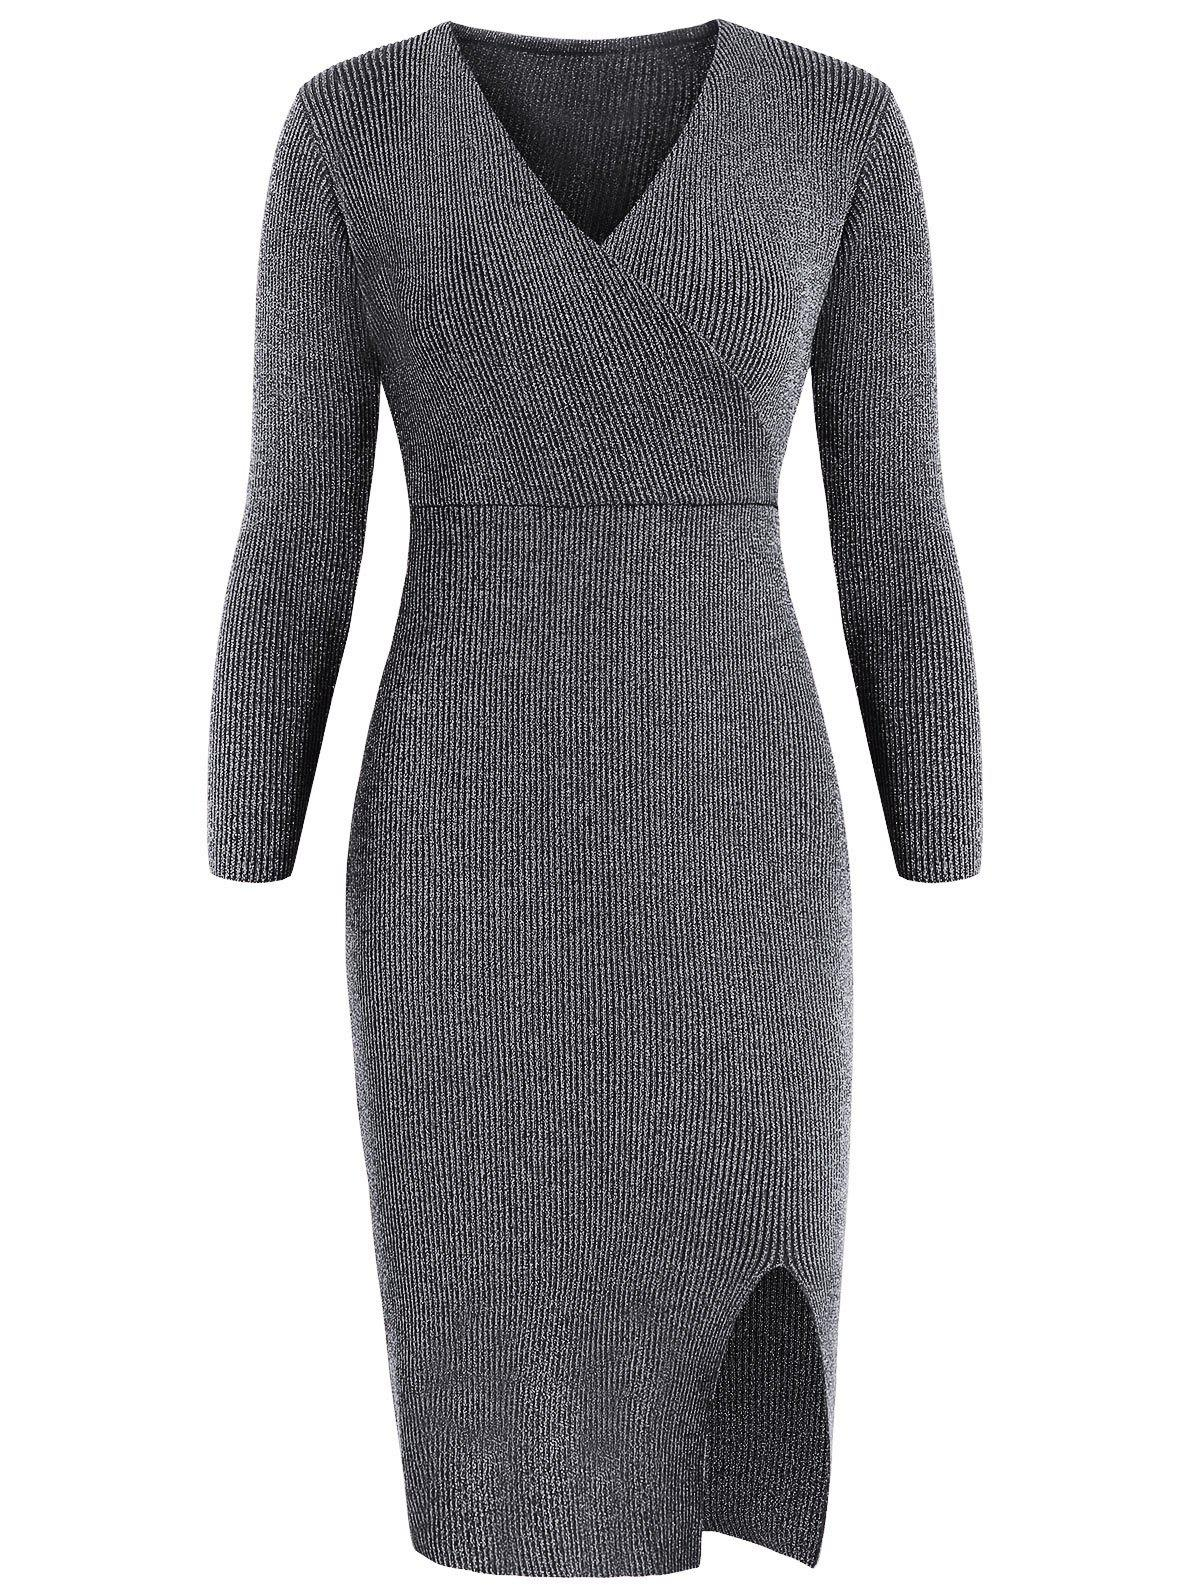 Shops Full Sleeve Shiny Knit Surplice Dress